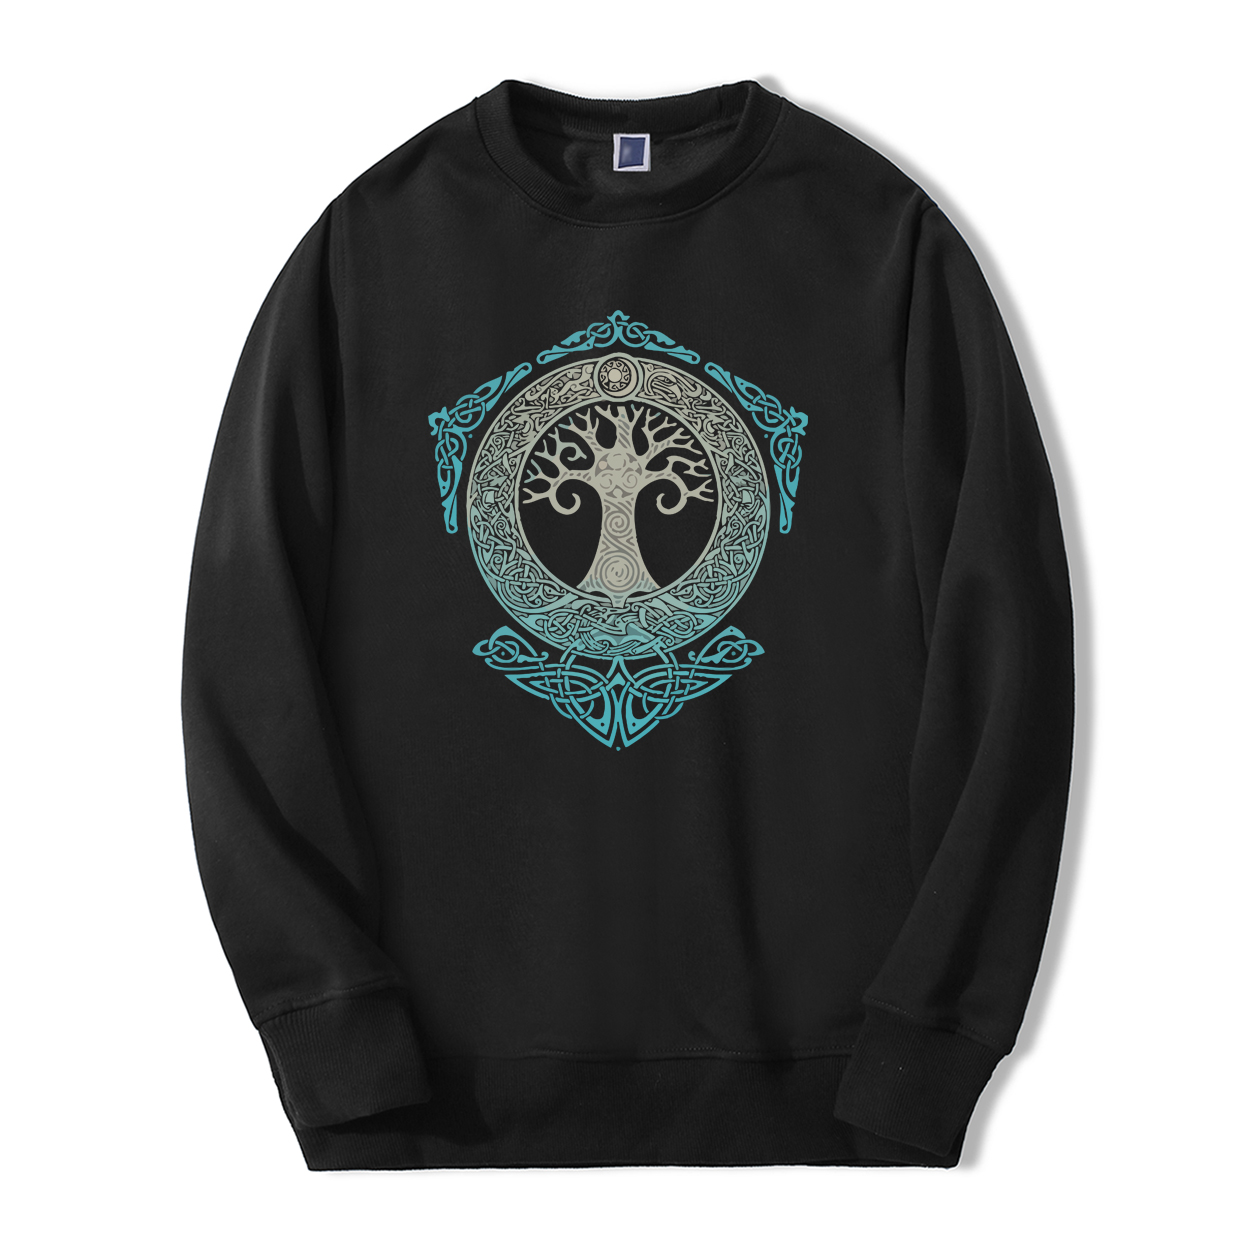 Yggdrasil Norse Mythology Loose Fleece Fitness Streetwear Hip Hop Mens Sweatshirt Viking Spring Winter Fashion Hoodie Tracksuit